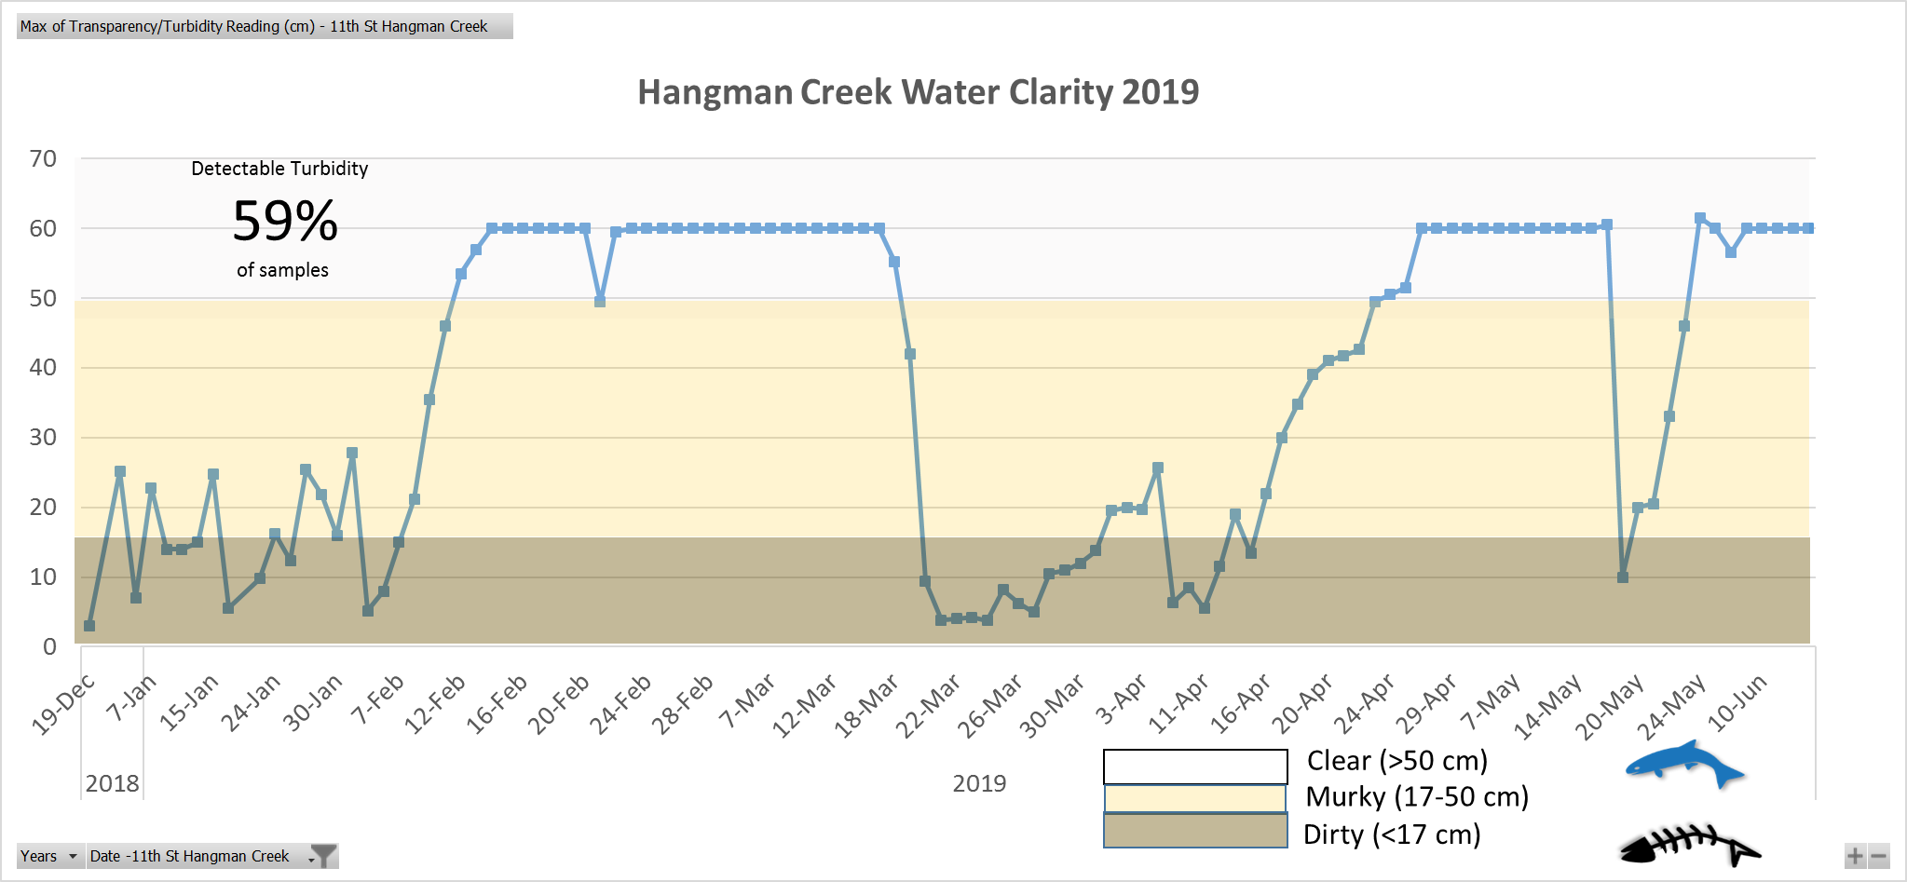 Hangman Creek had measurable turbidity 59% of the time. Freezing temperatures in February and March improved water clarity, while much of the winter and spring showed poor water clarity.